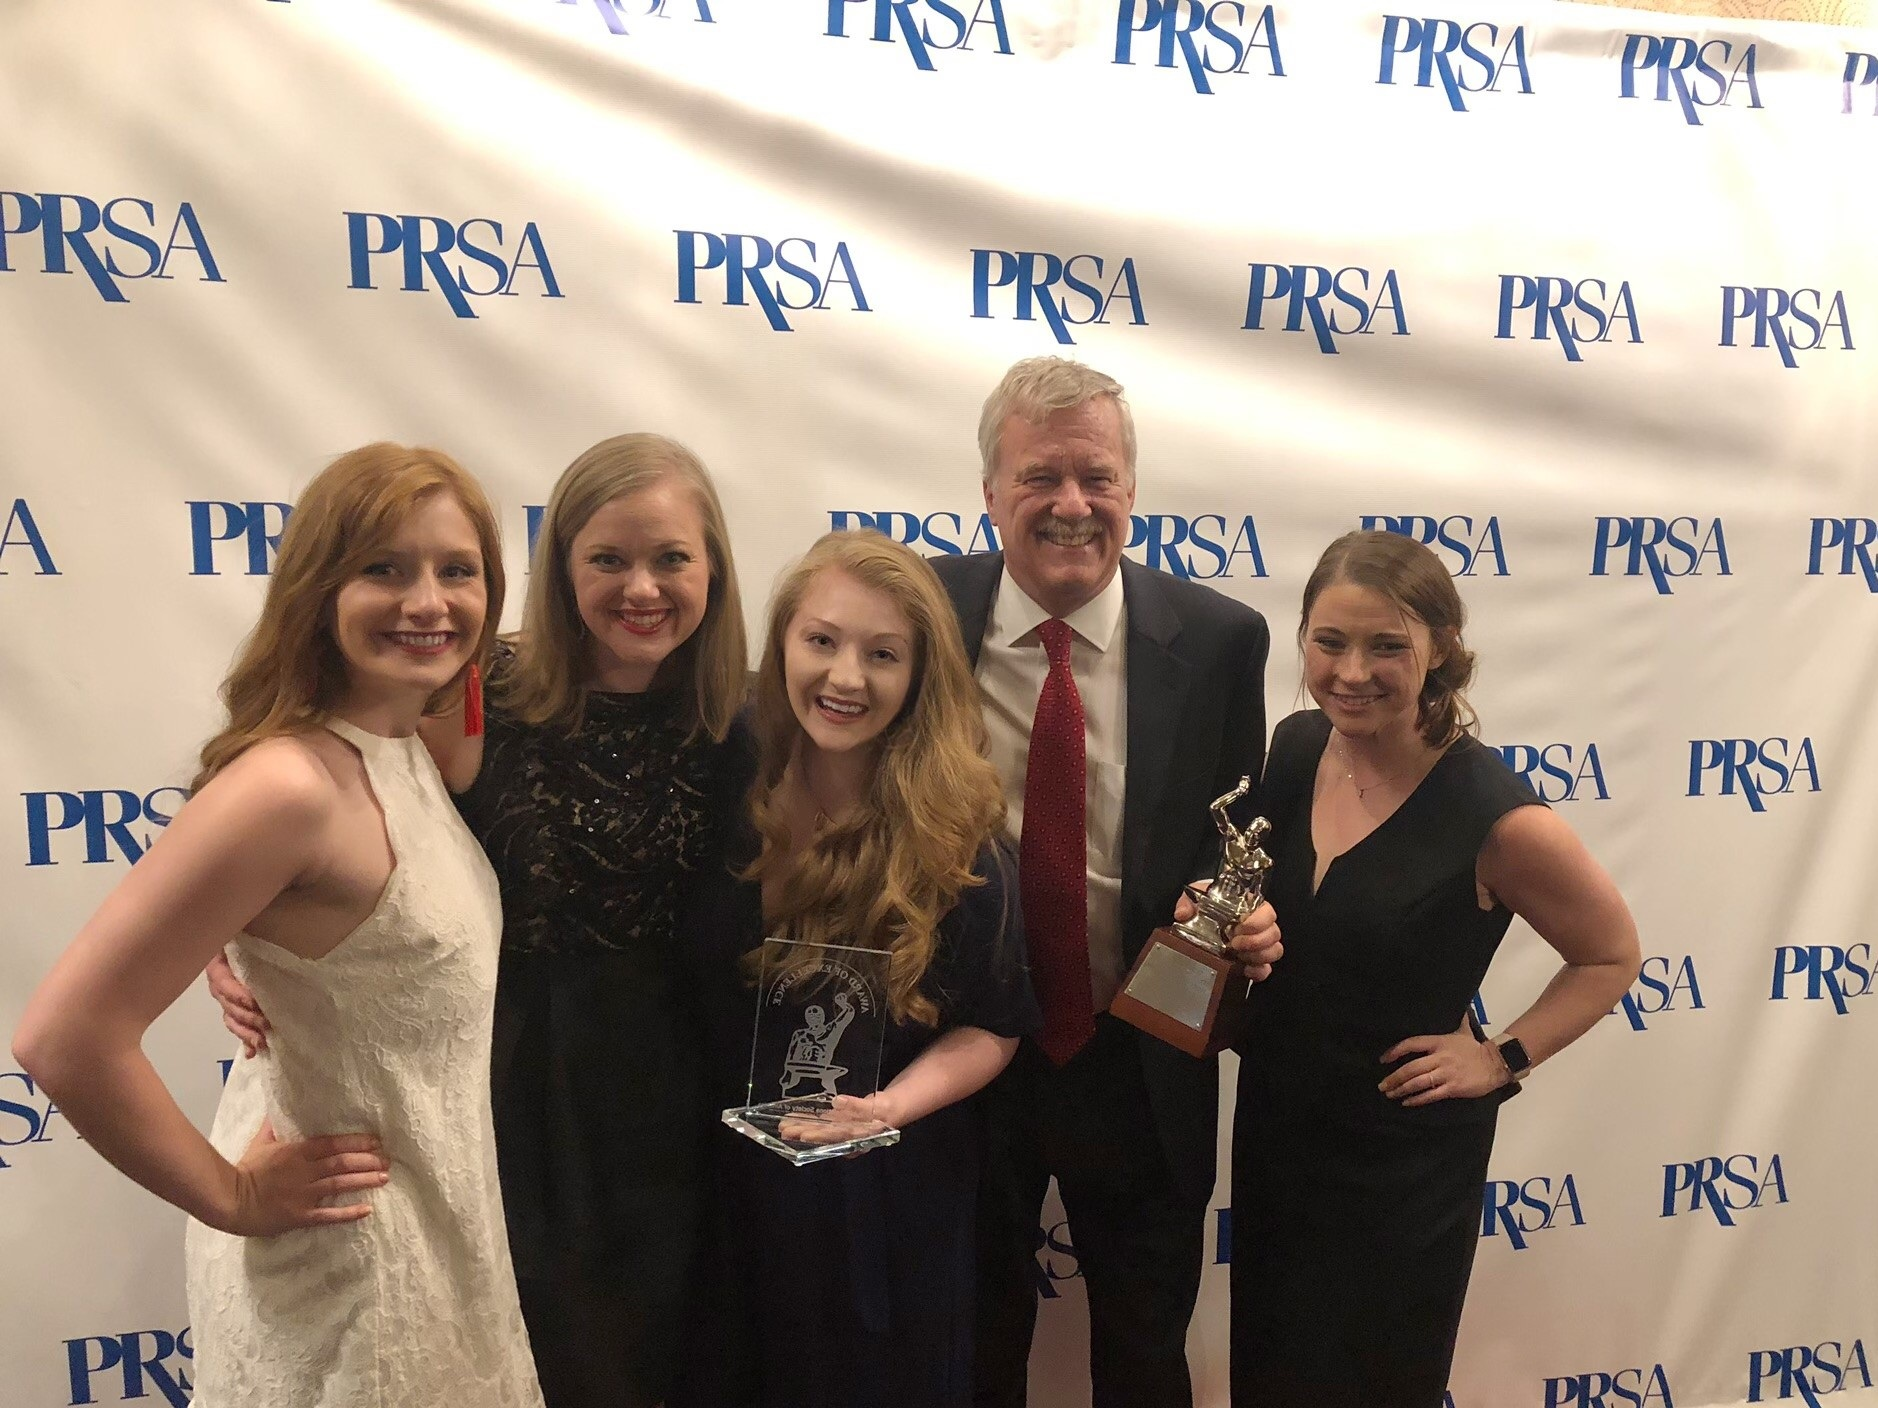 The Three Box team celebrates bringing home a Silver Anvil Award and a Silver Anvil Award of honor in New York City.